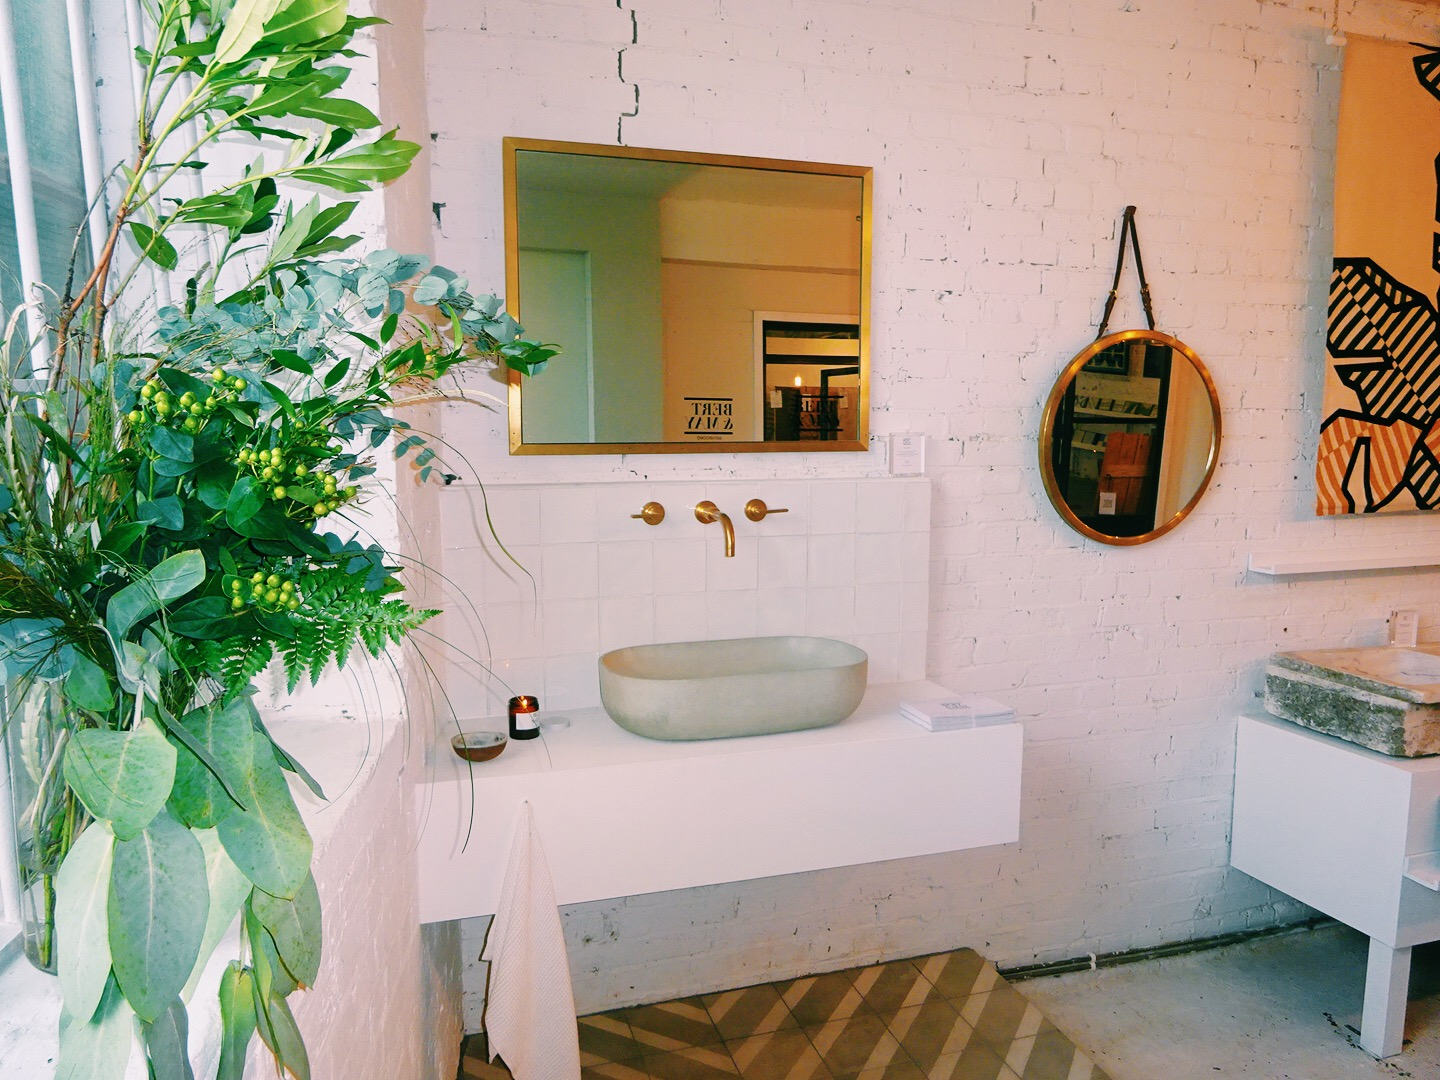 Dream concrete sink, brass fixtures and mirrors!